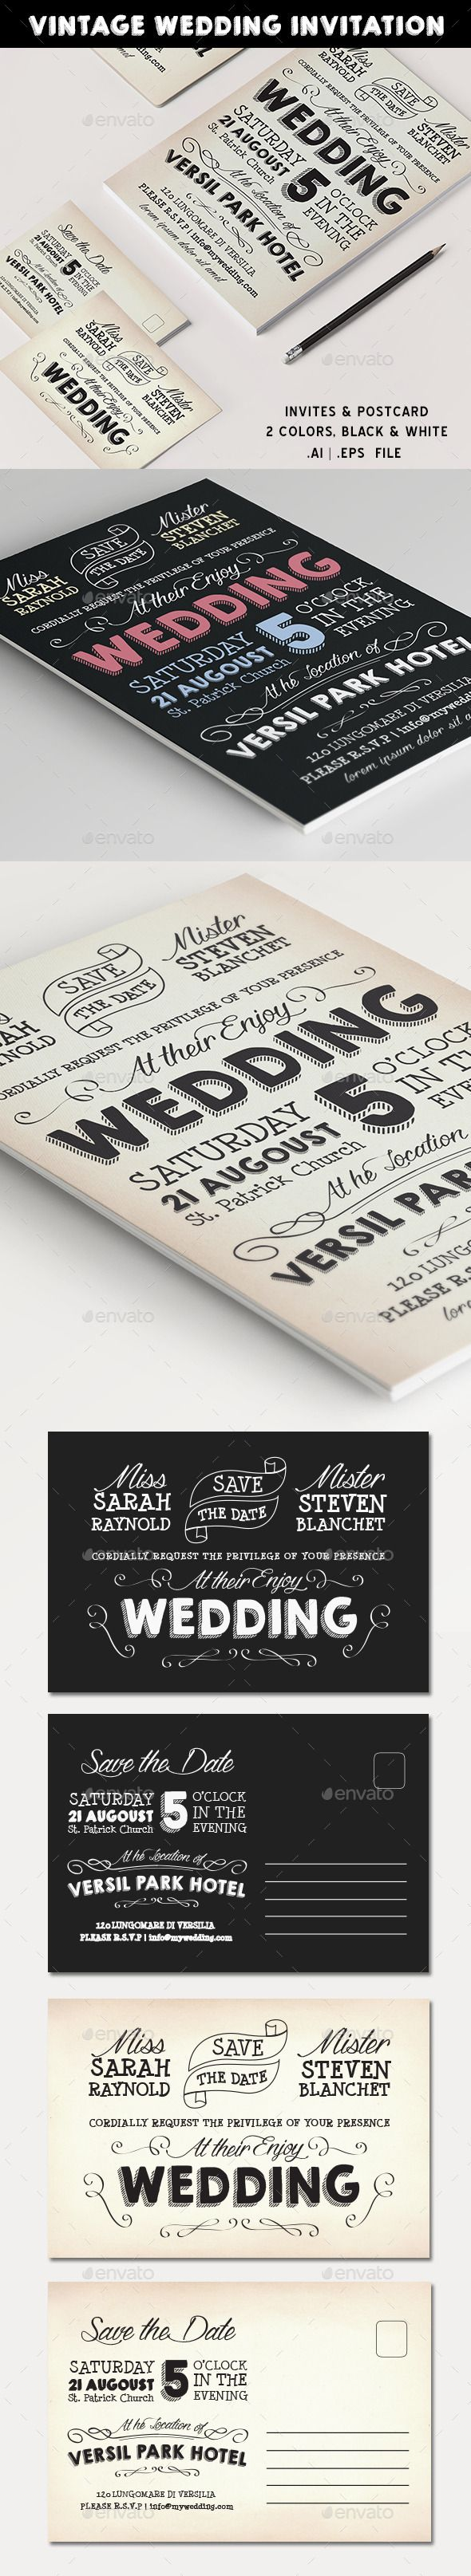 Best Wedding Invitation Images On